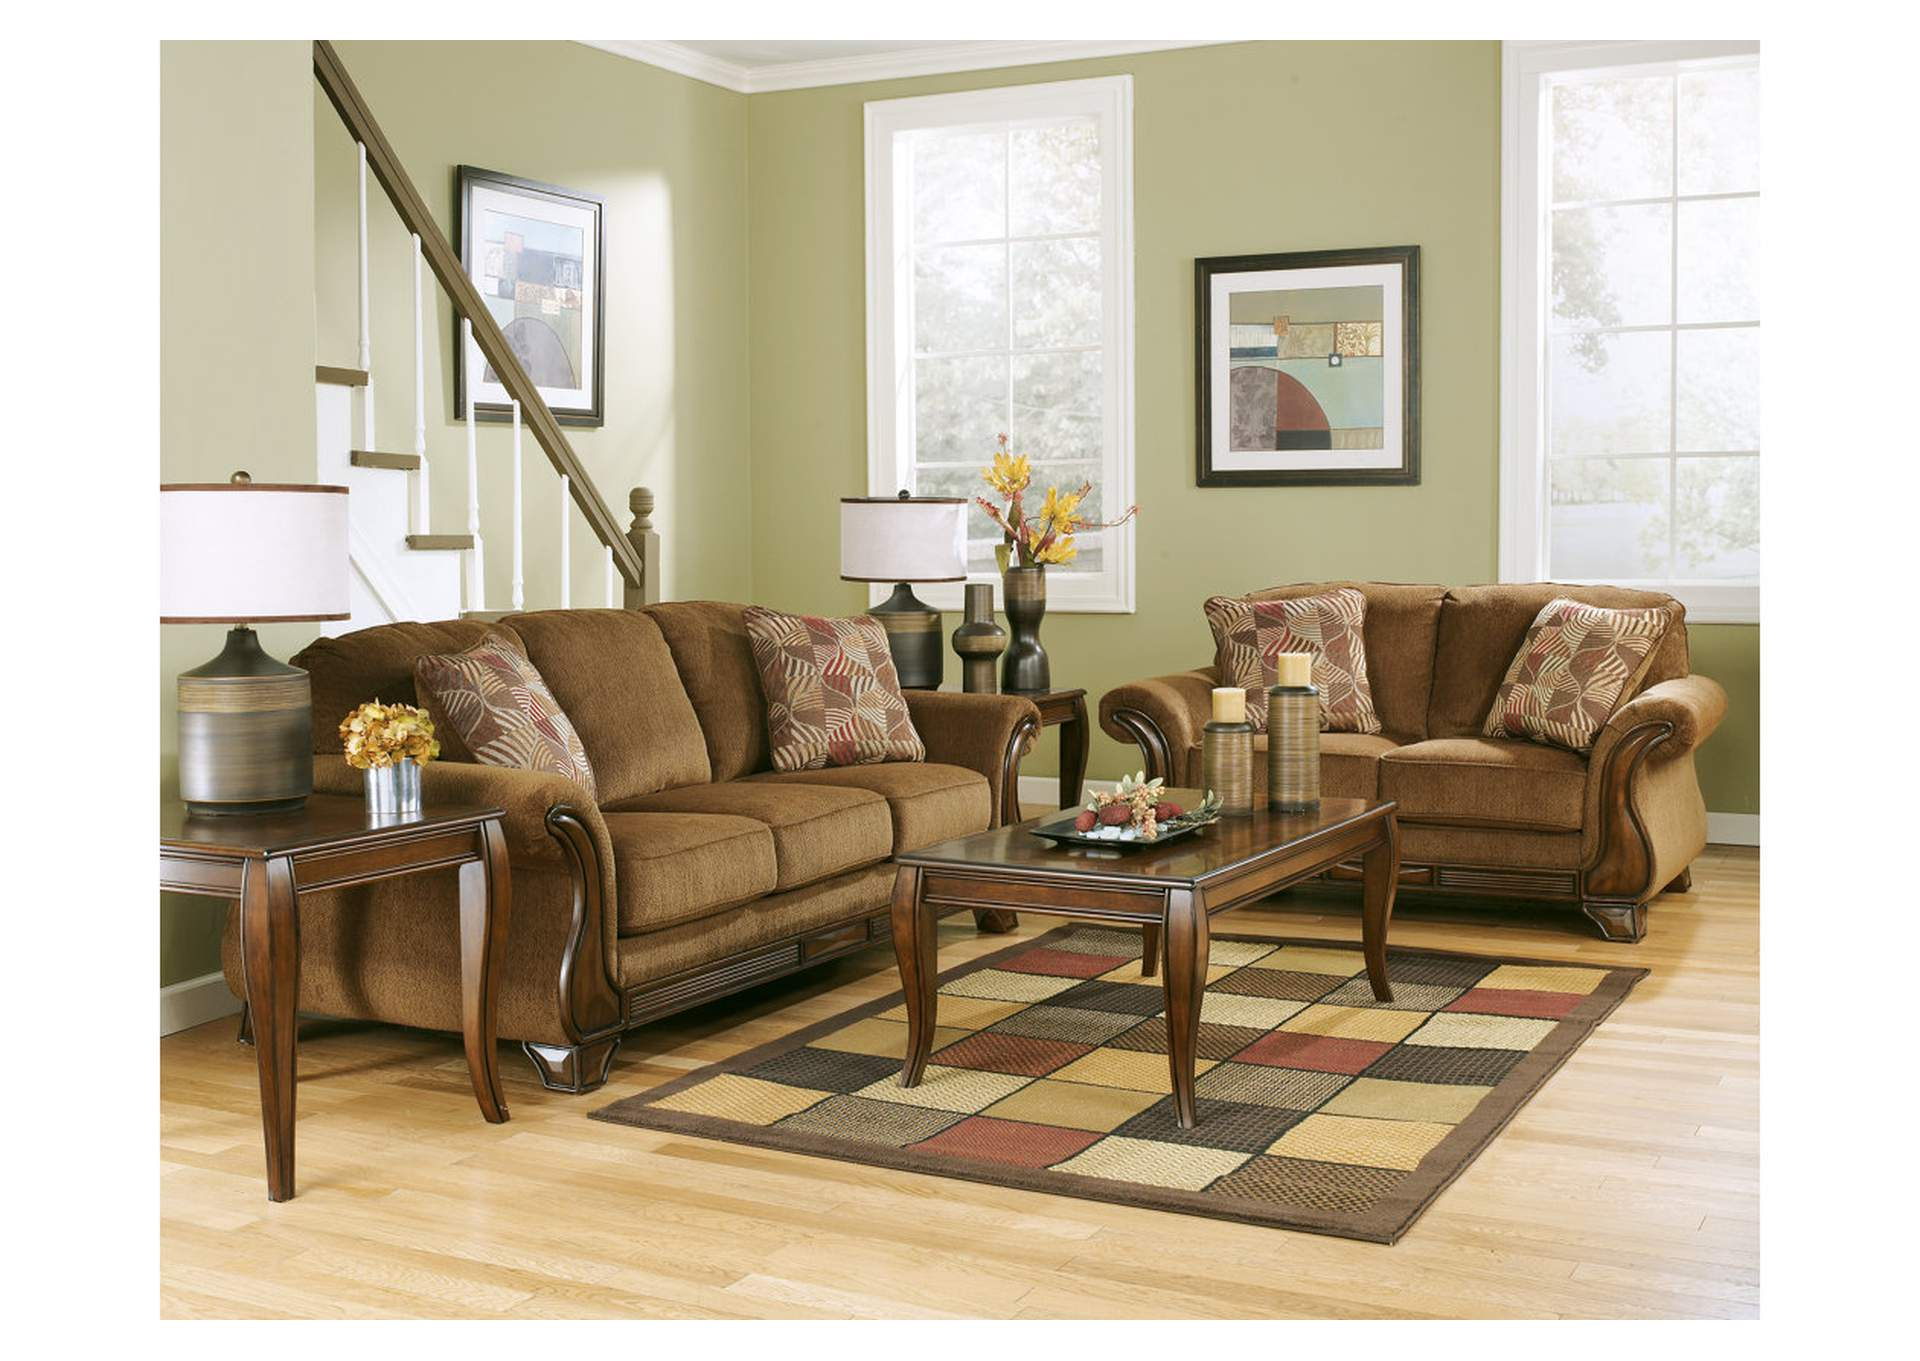 Living Room Furniture Nj furniture house - dover, nj montgomery mocha sofa & loveseat